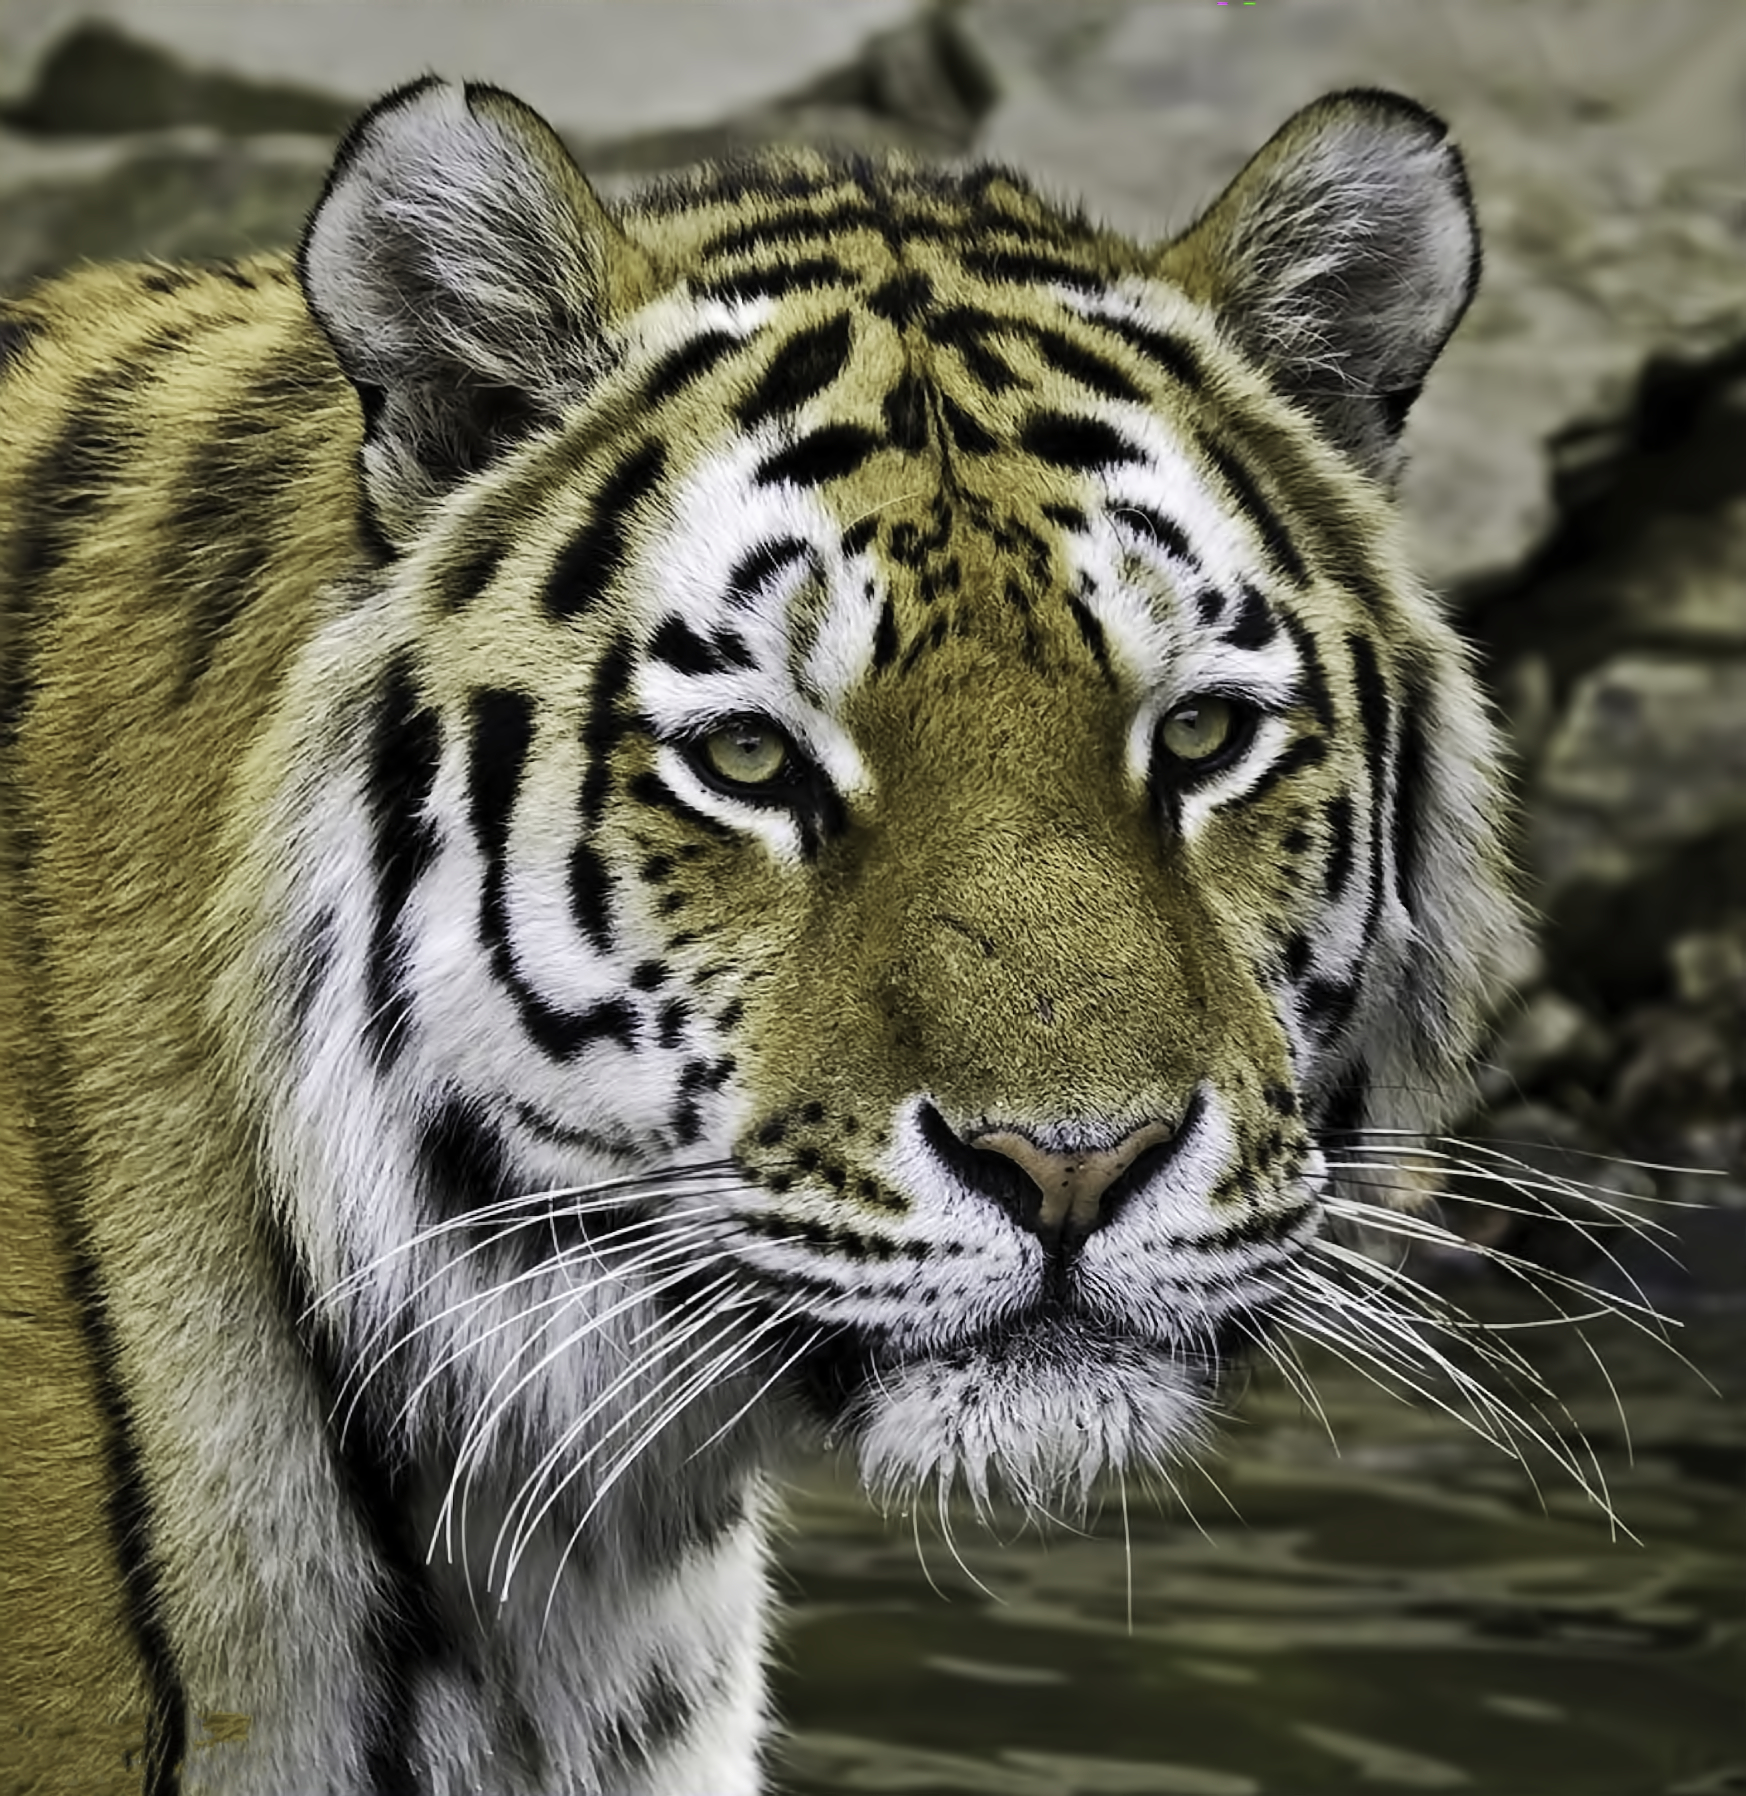 tiger, animal, endangered, predator, majestic